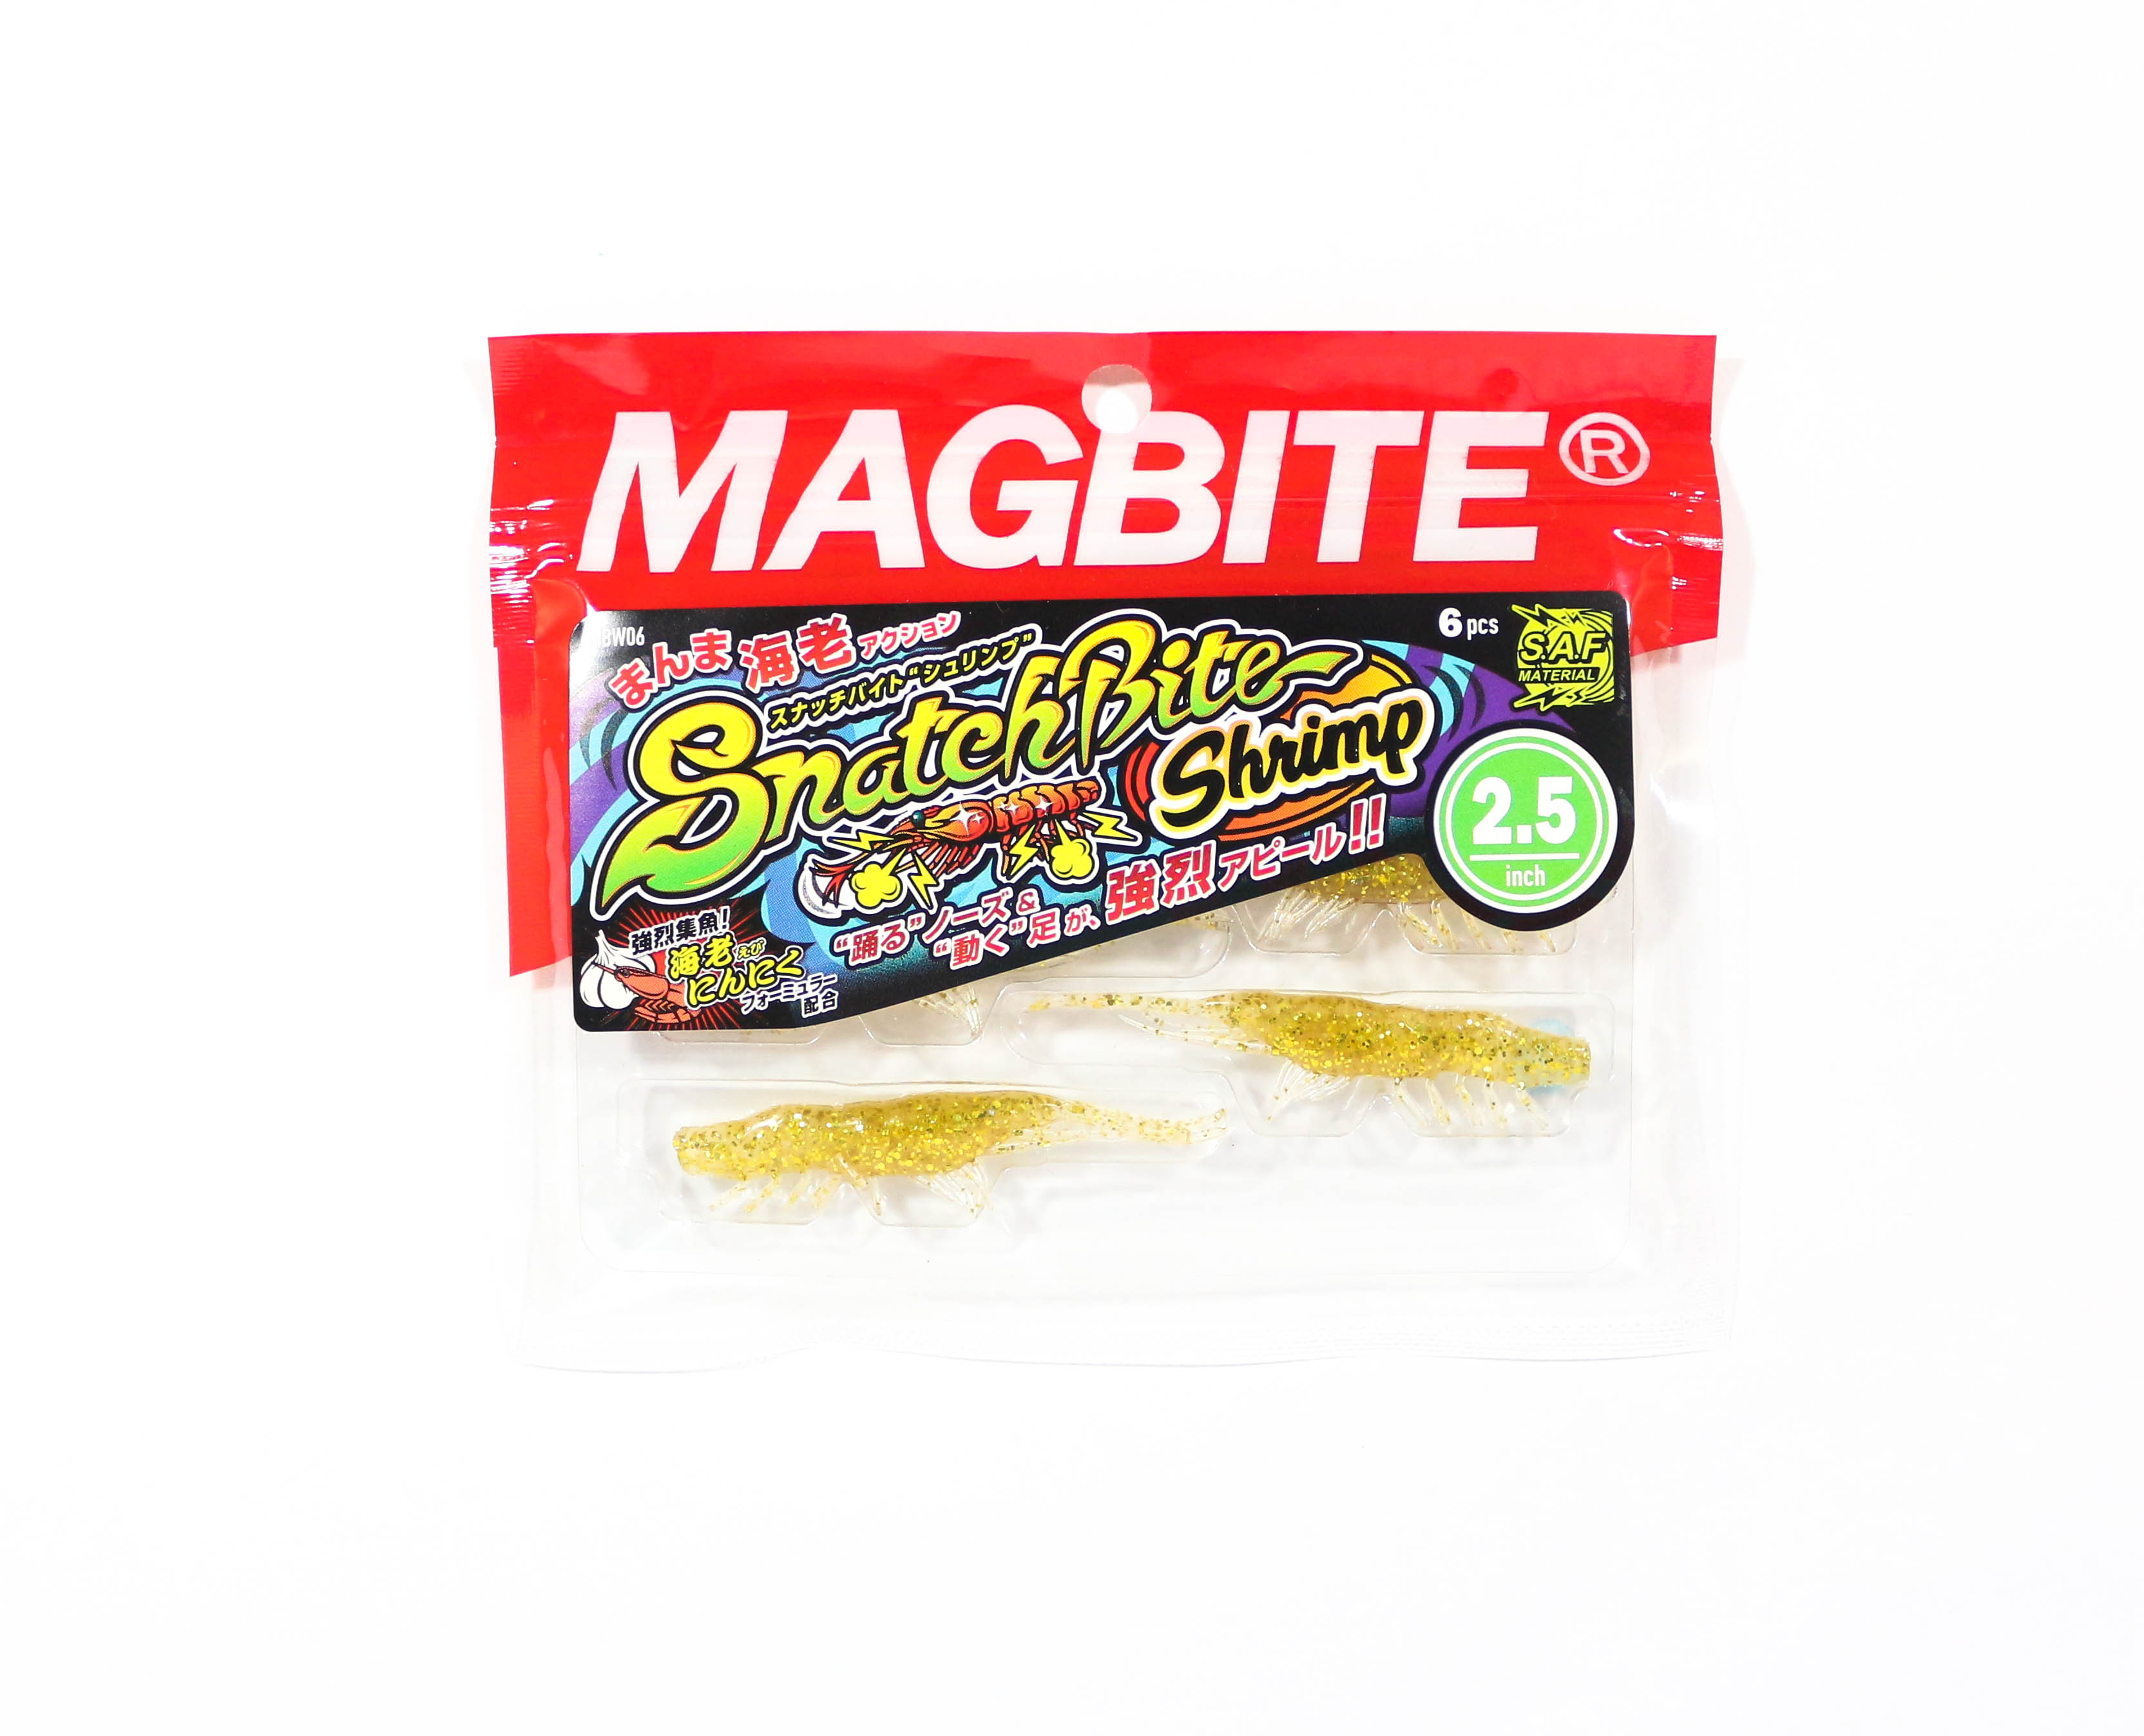 Harimitsu Mag Bite Snatch Shrimp 2.5 Inch 6 per pack 02 (6508)